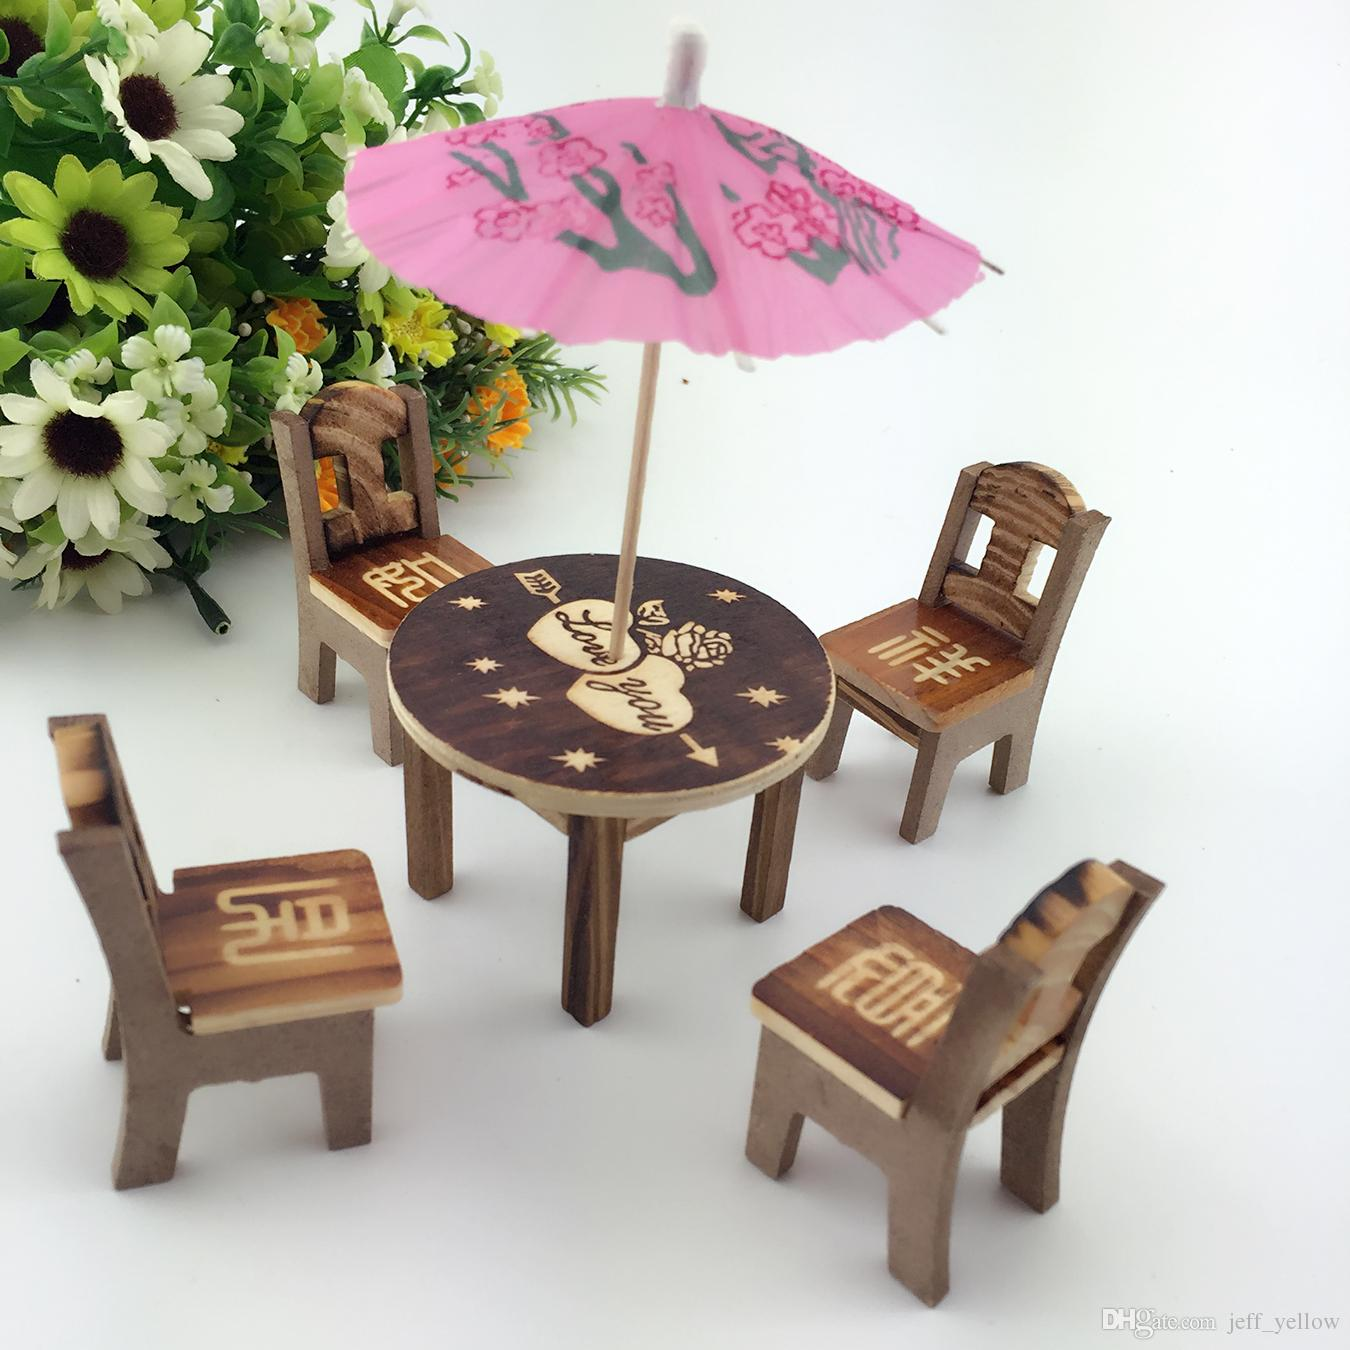 Childrens Wooden Table And Chairs Free Shipping Eight Immortals Table Baby Wooden Table And Chair Children S Simulation Toy House Wooden Chair Model Mini Set